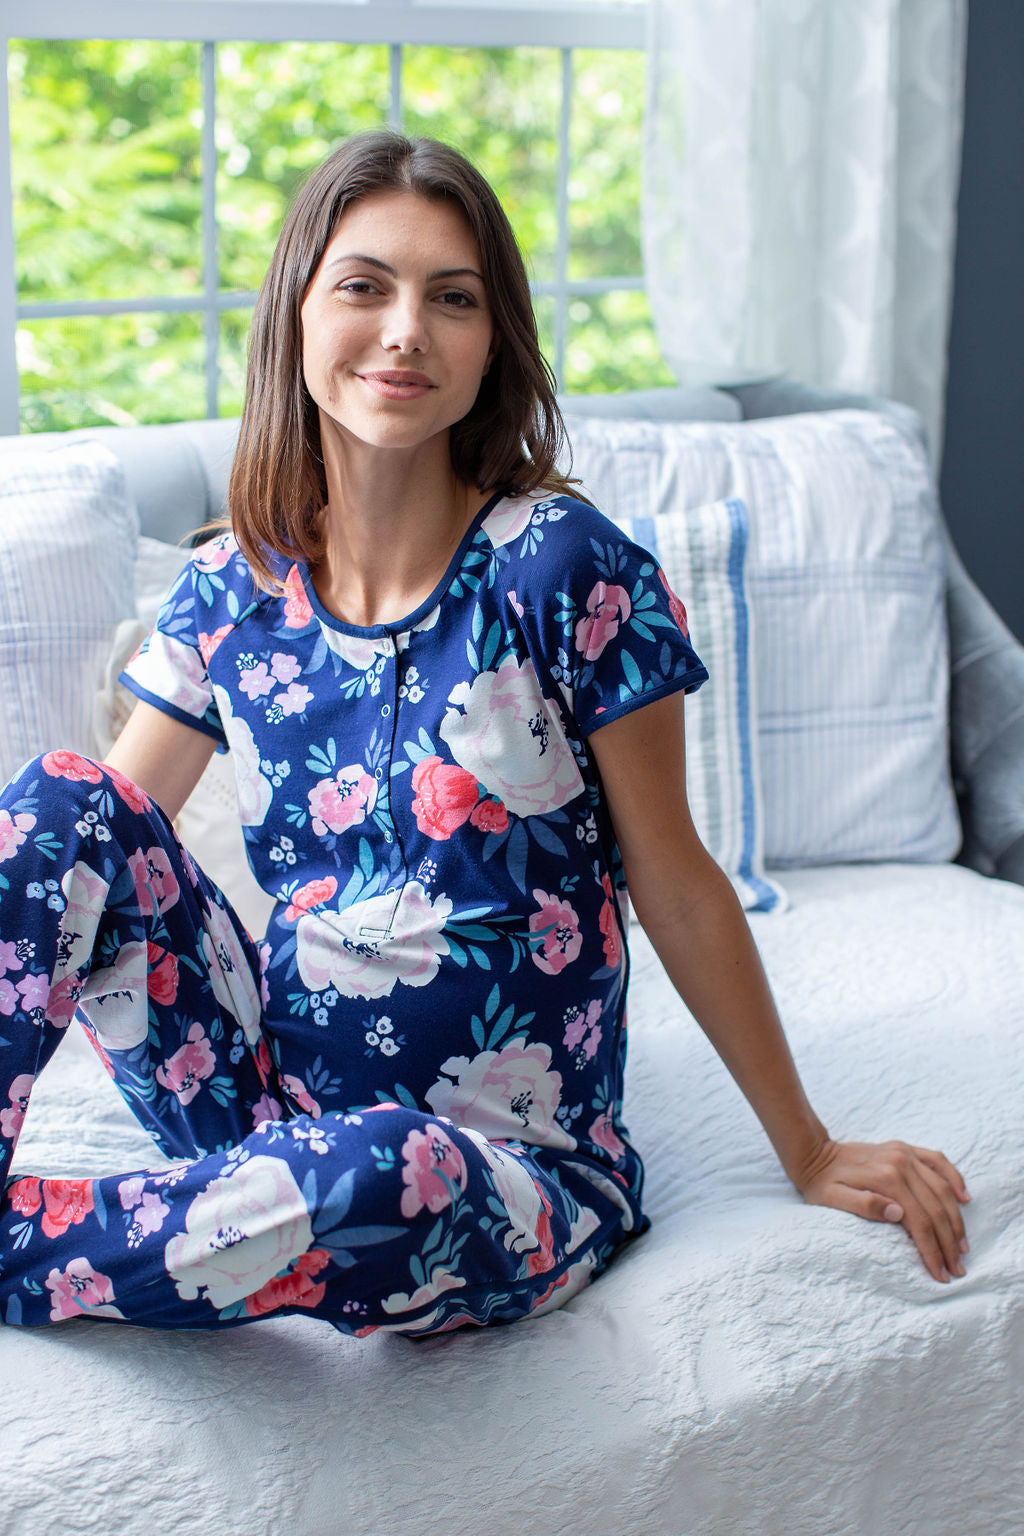 Annabelle printed maternity pajamas for mom. Elastic waistline, snap enclosures on shirt for breastfeeding, and a stylish dolphin hem.